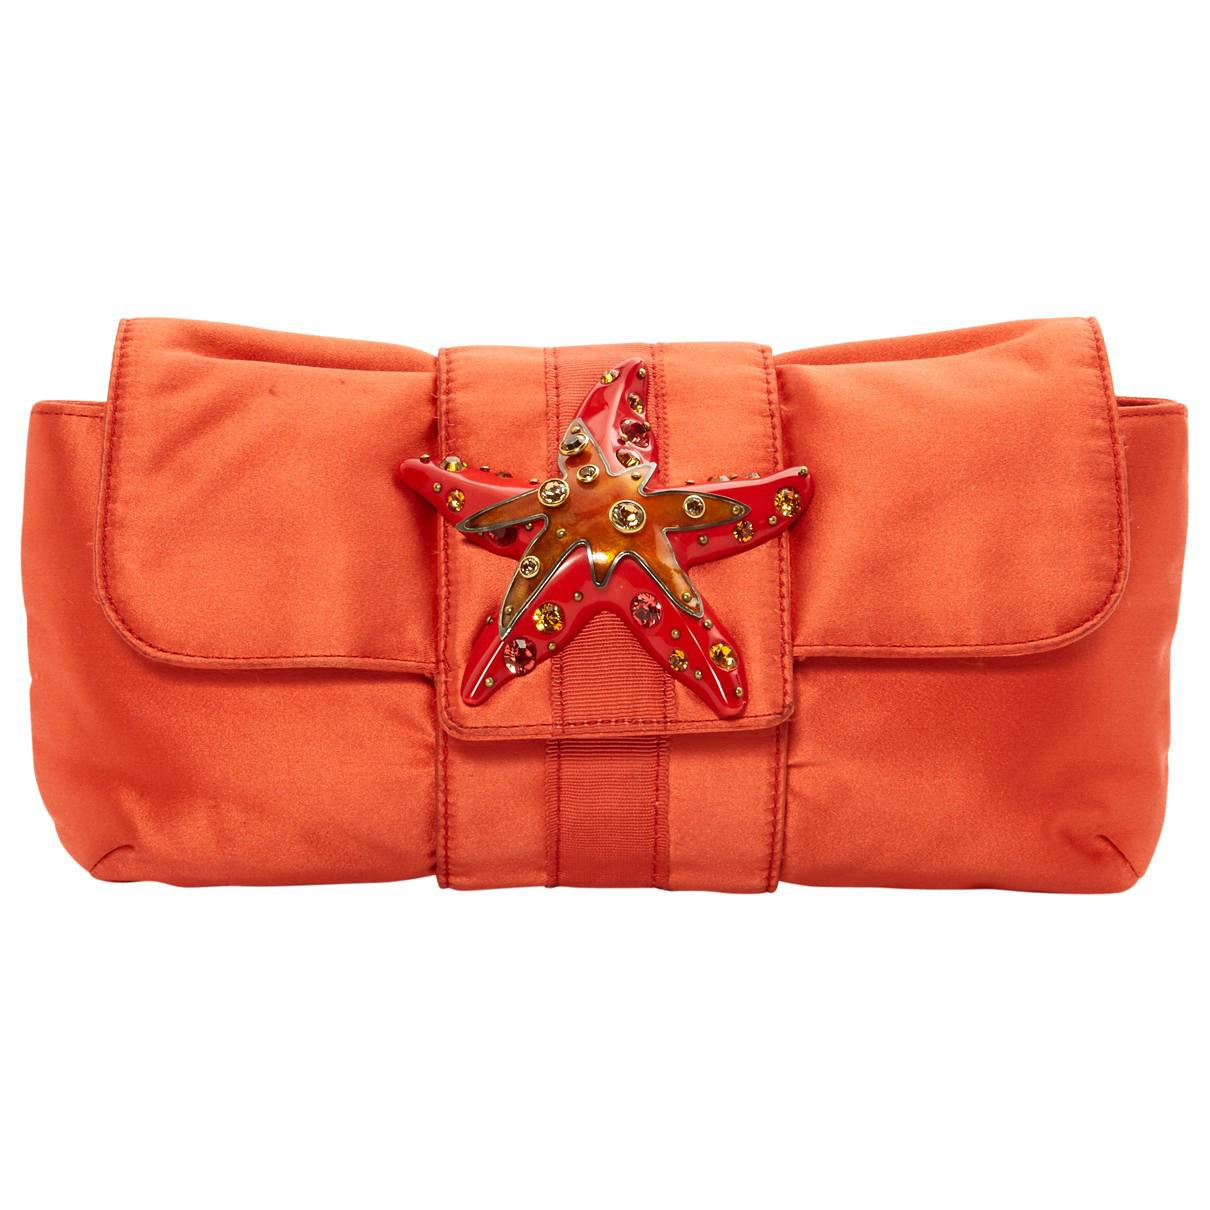 Lanvin Pre-owned - Cloth clutch bag